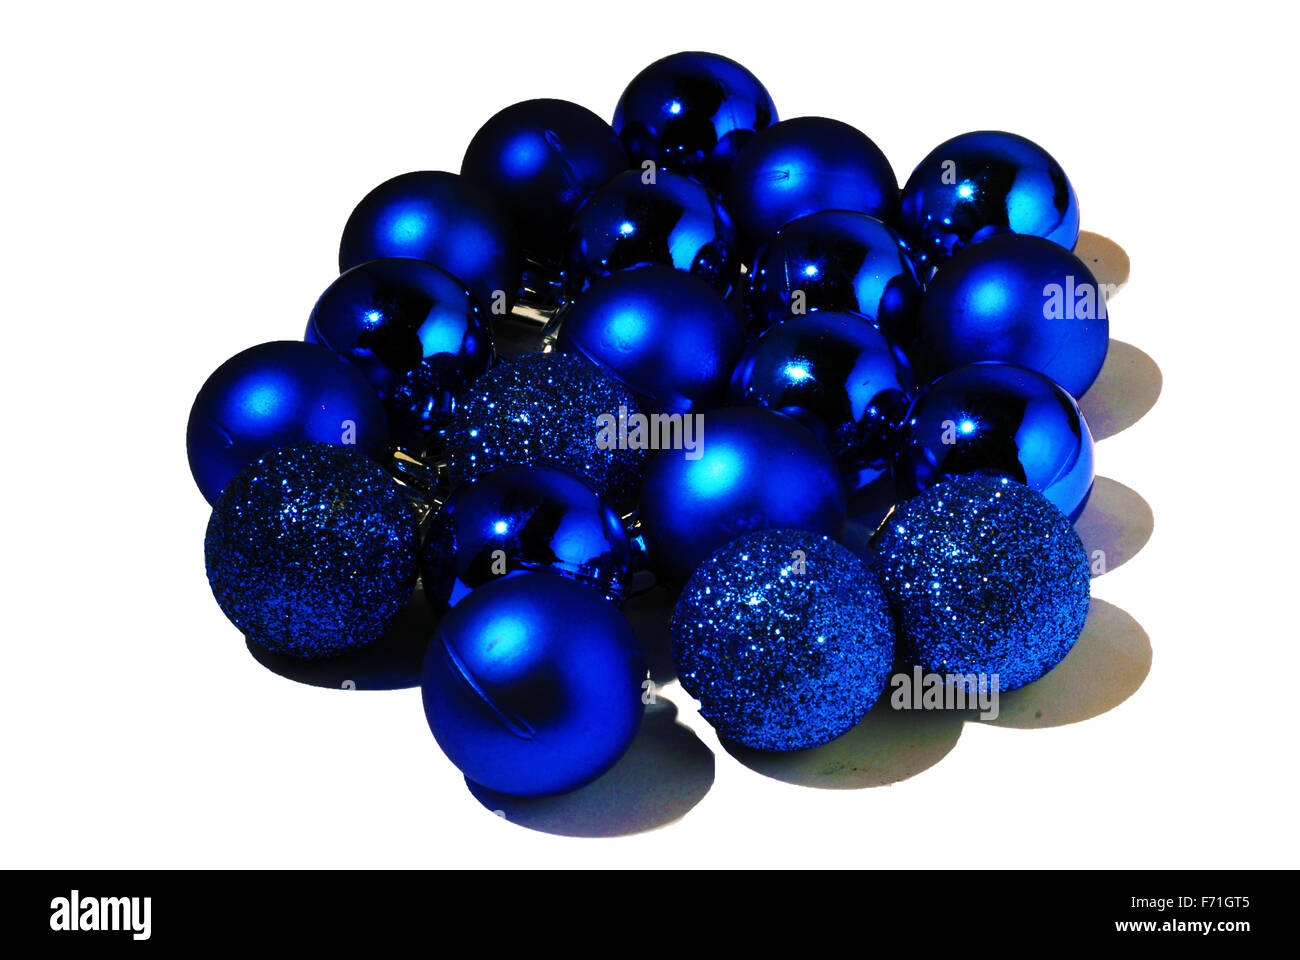 blue,christmas balls,sparkly,sparkle,glass ball, - Stock Image